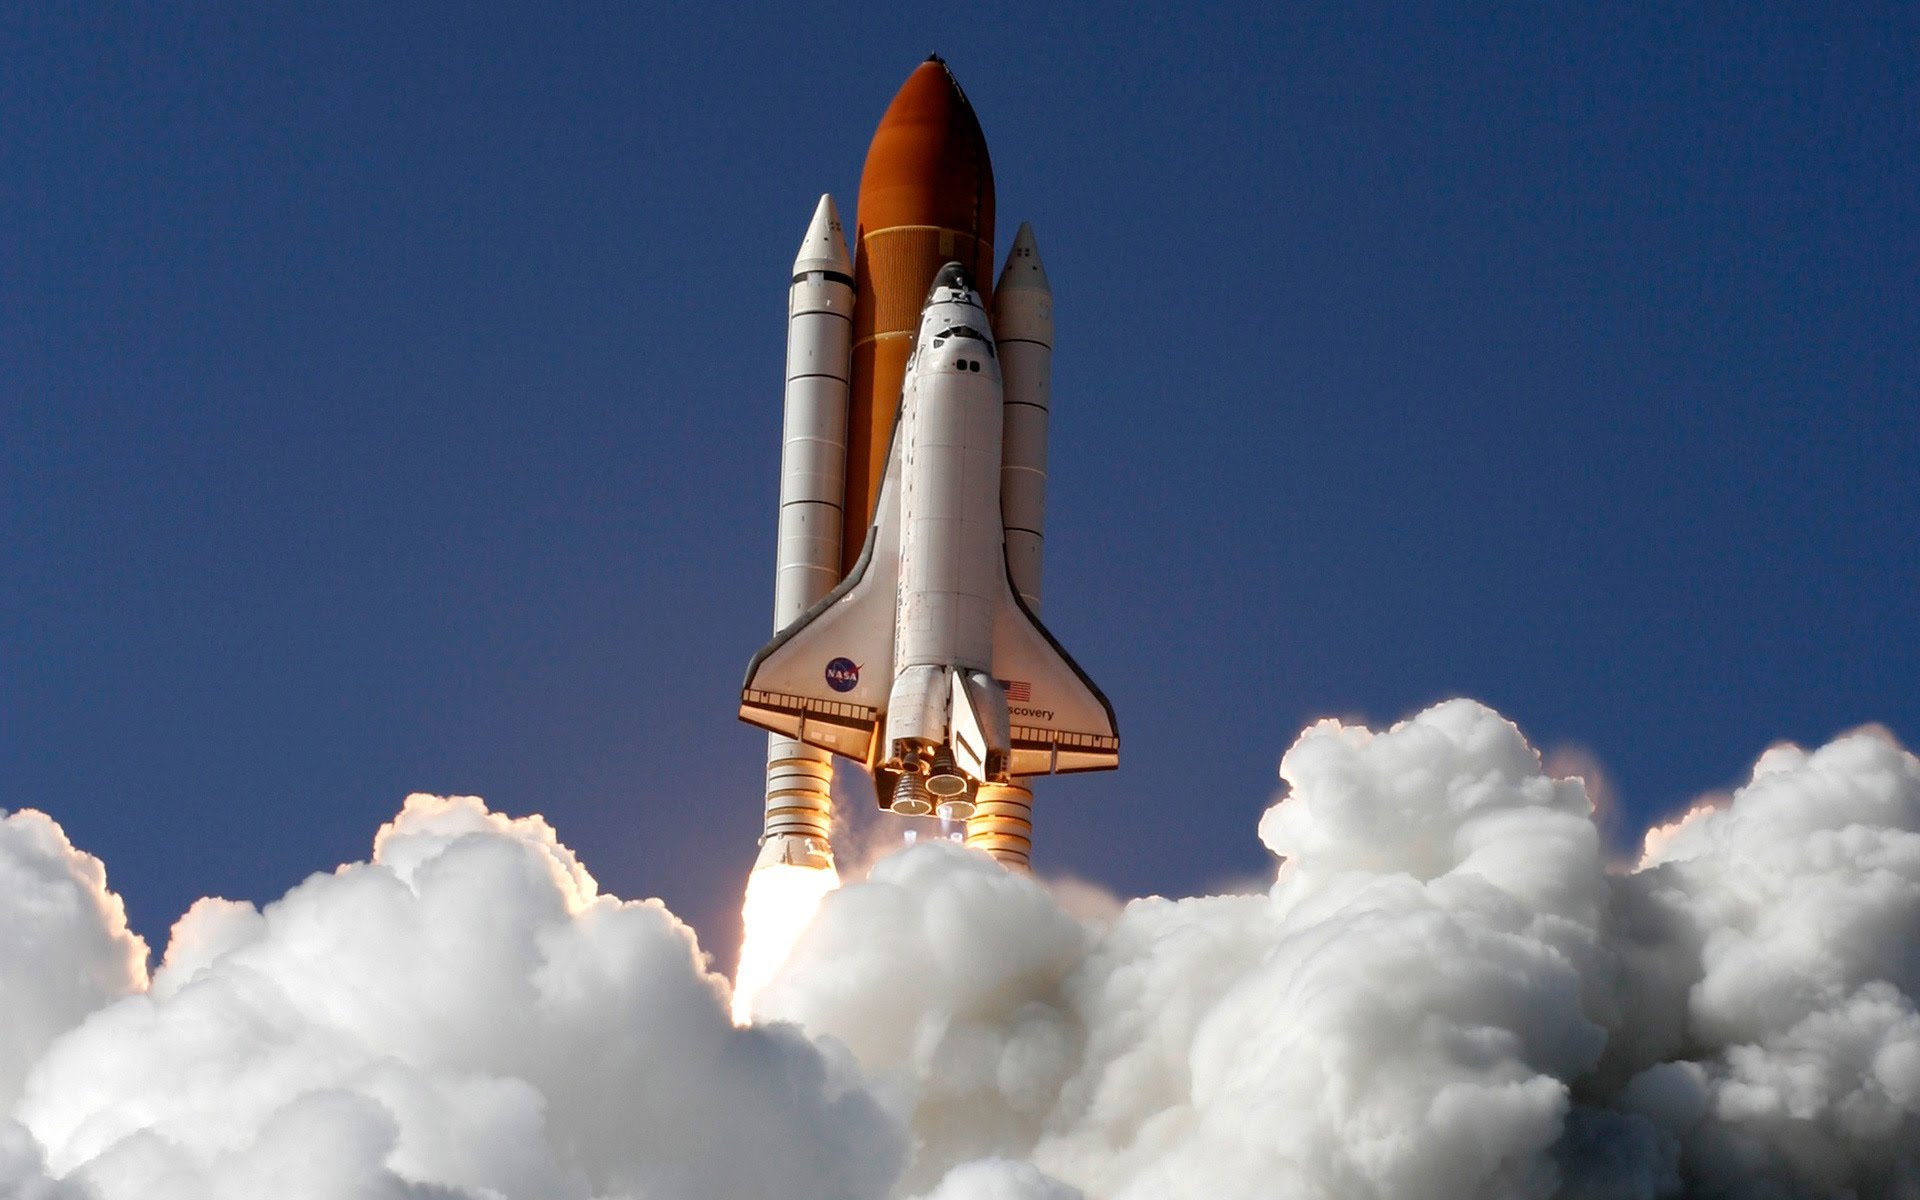 space-shuttle-endeavour-wallpapers-32571-8289223